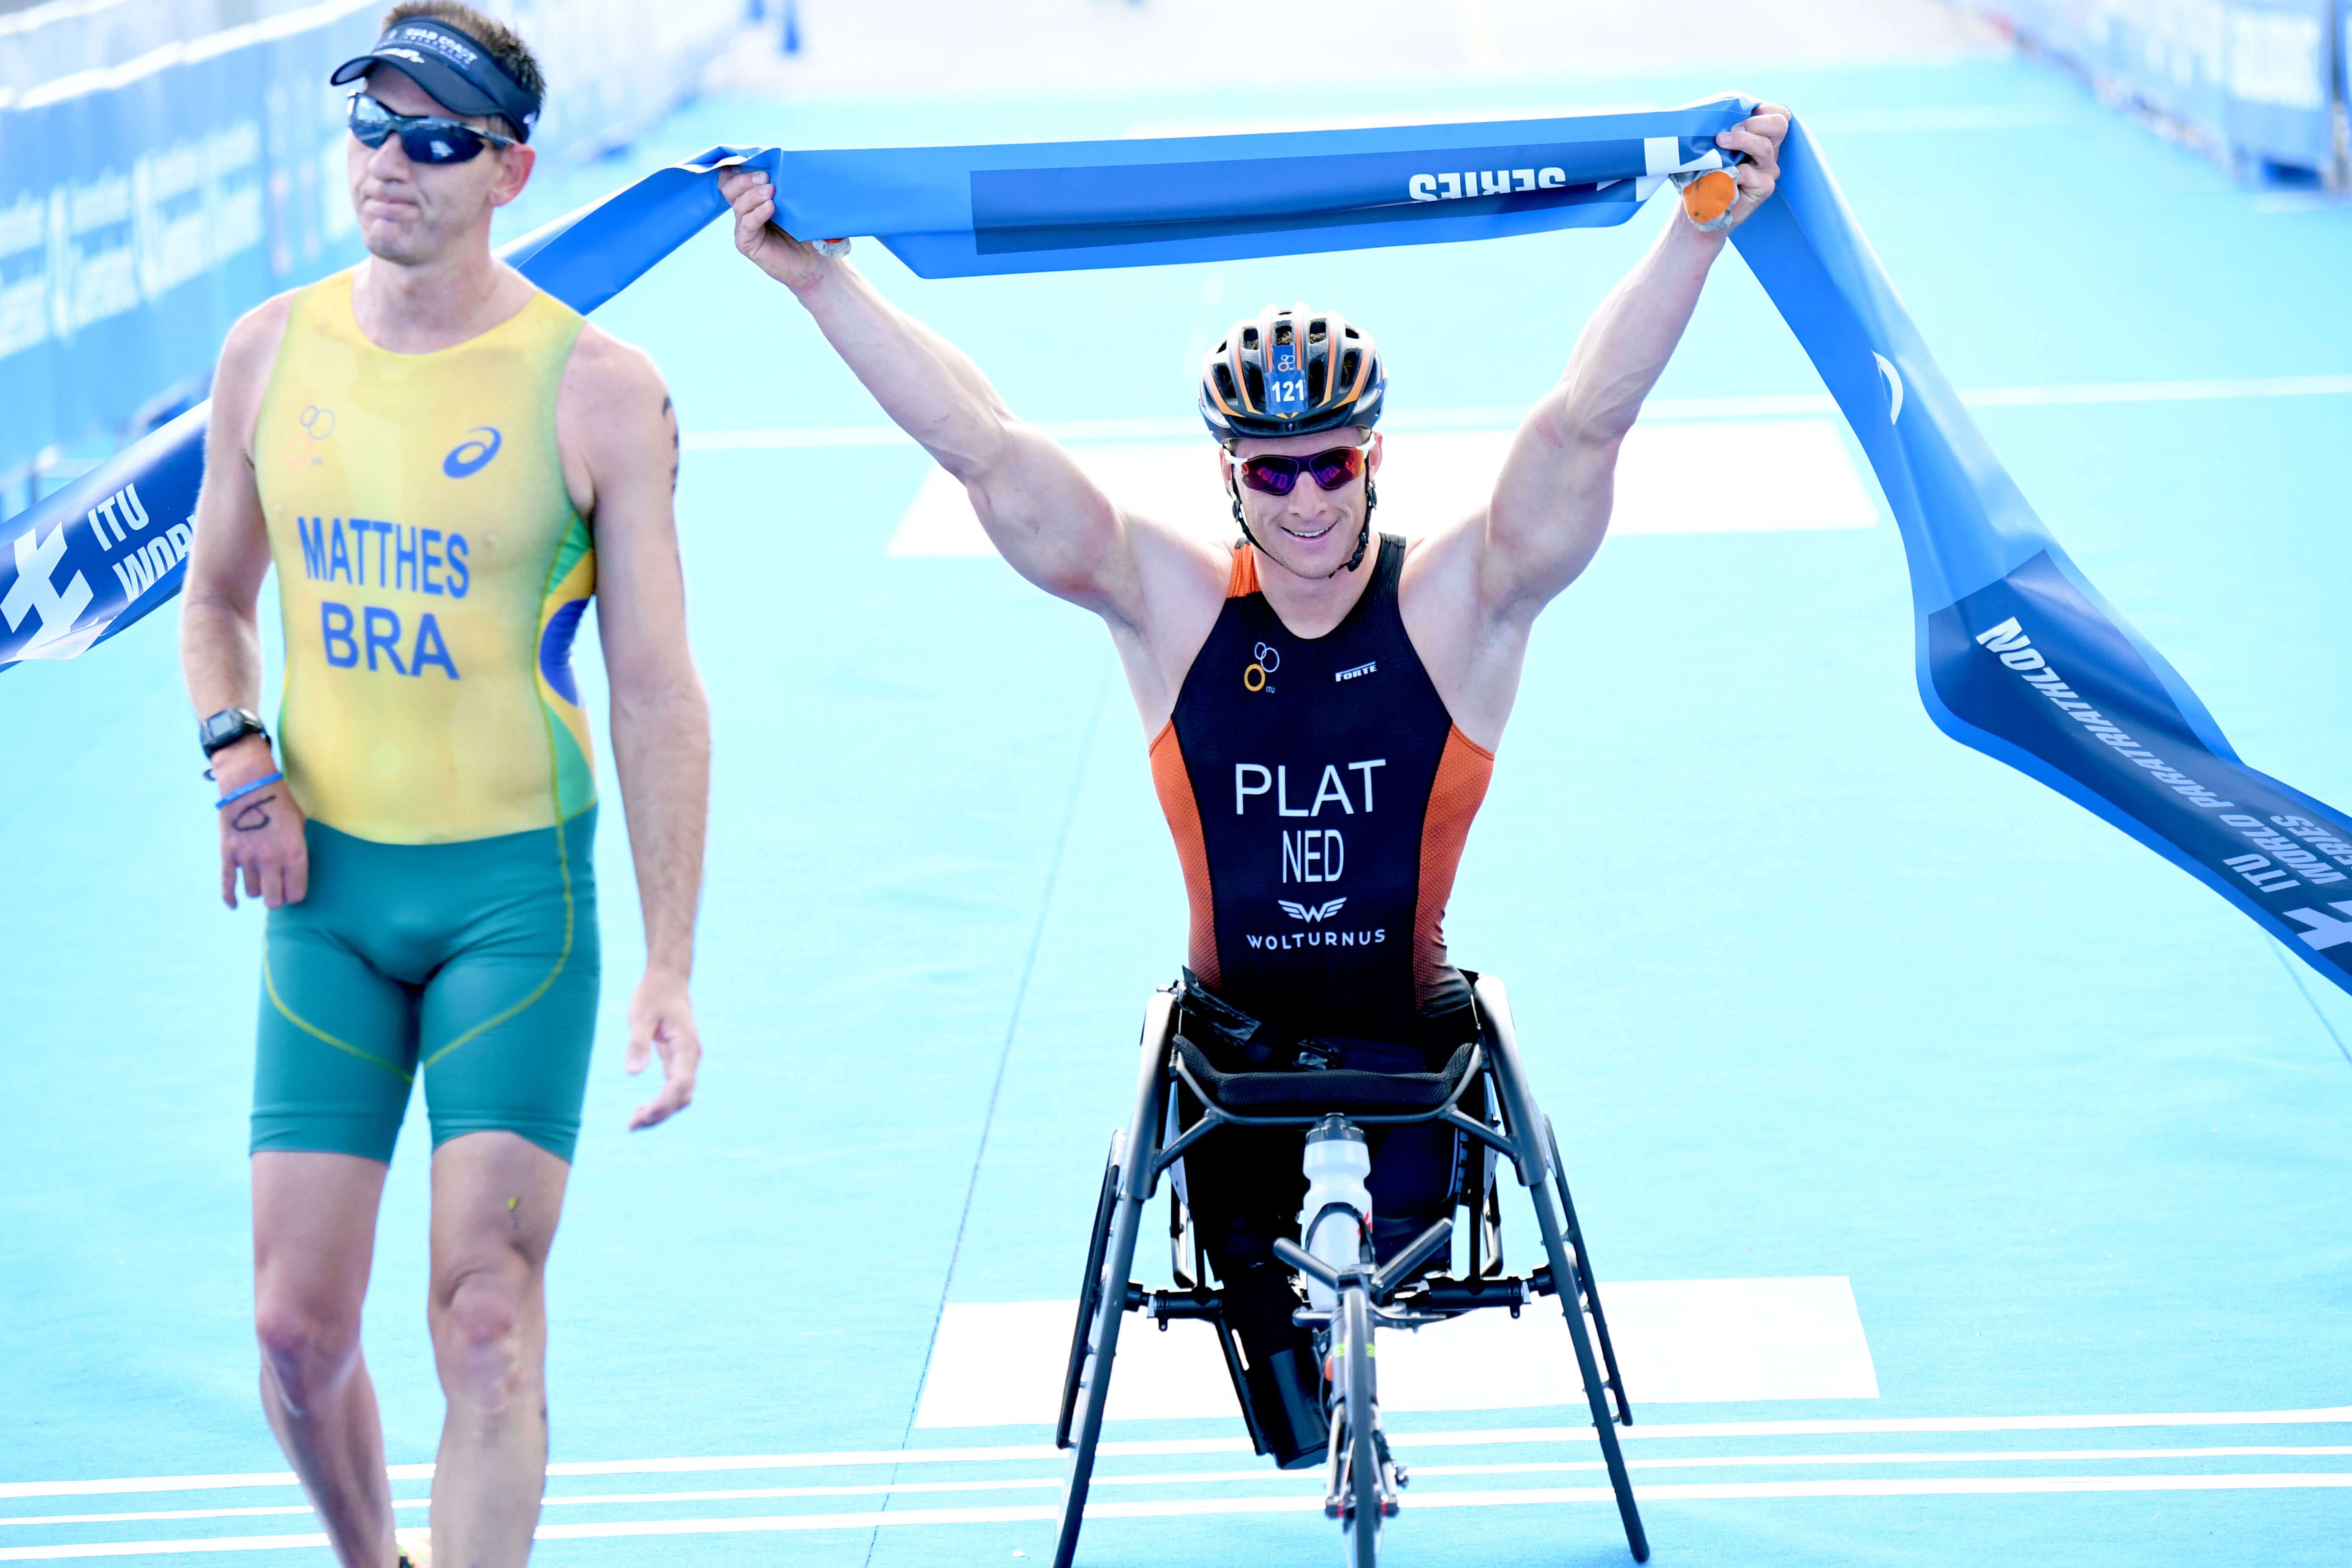 Jetze Plat wins in gold coast